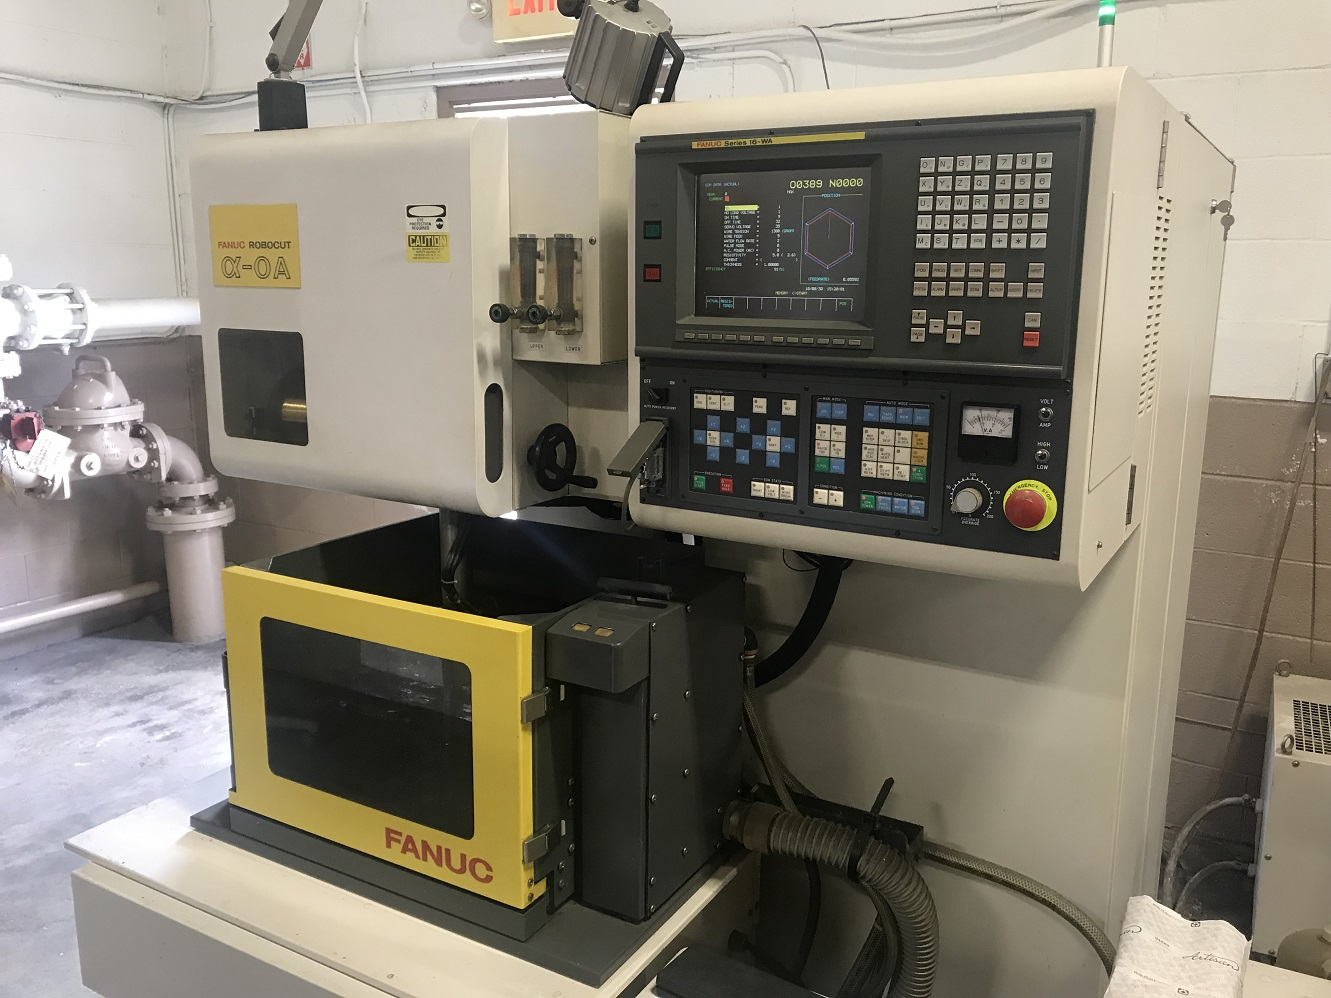 "Fanuc Robocut Alpha 0A, F16WA, 11.8""/7.87""/6"" Travel, 1100 Lb Capacity, Chiller, Transformer, 1994"